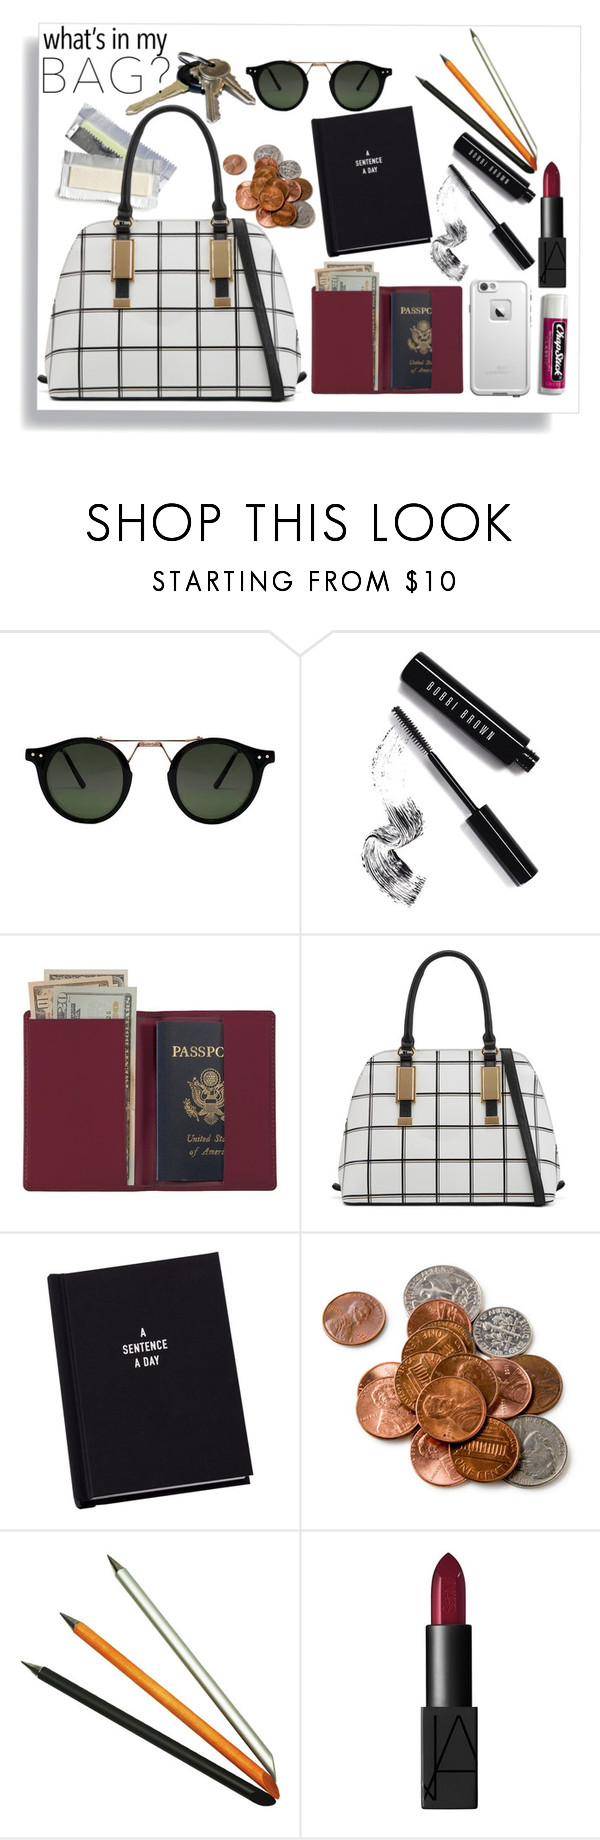 """""""in my bag"""" by couldyouatleast ❤ liked on Polyvore featuring Bobbi Brown Cosmetics, Royce Leather, ALDO, Avon, Jac Zagoory Designs, NARS Cosmetics, LifeProof, Chapstick and inmybag"""